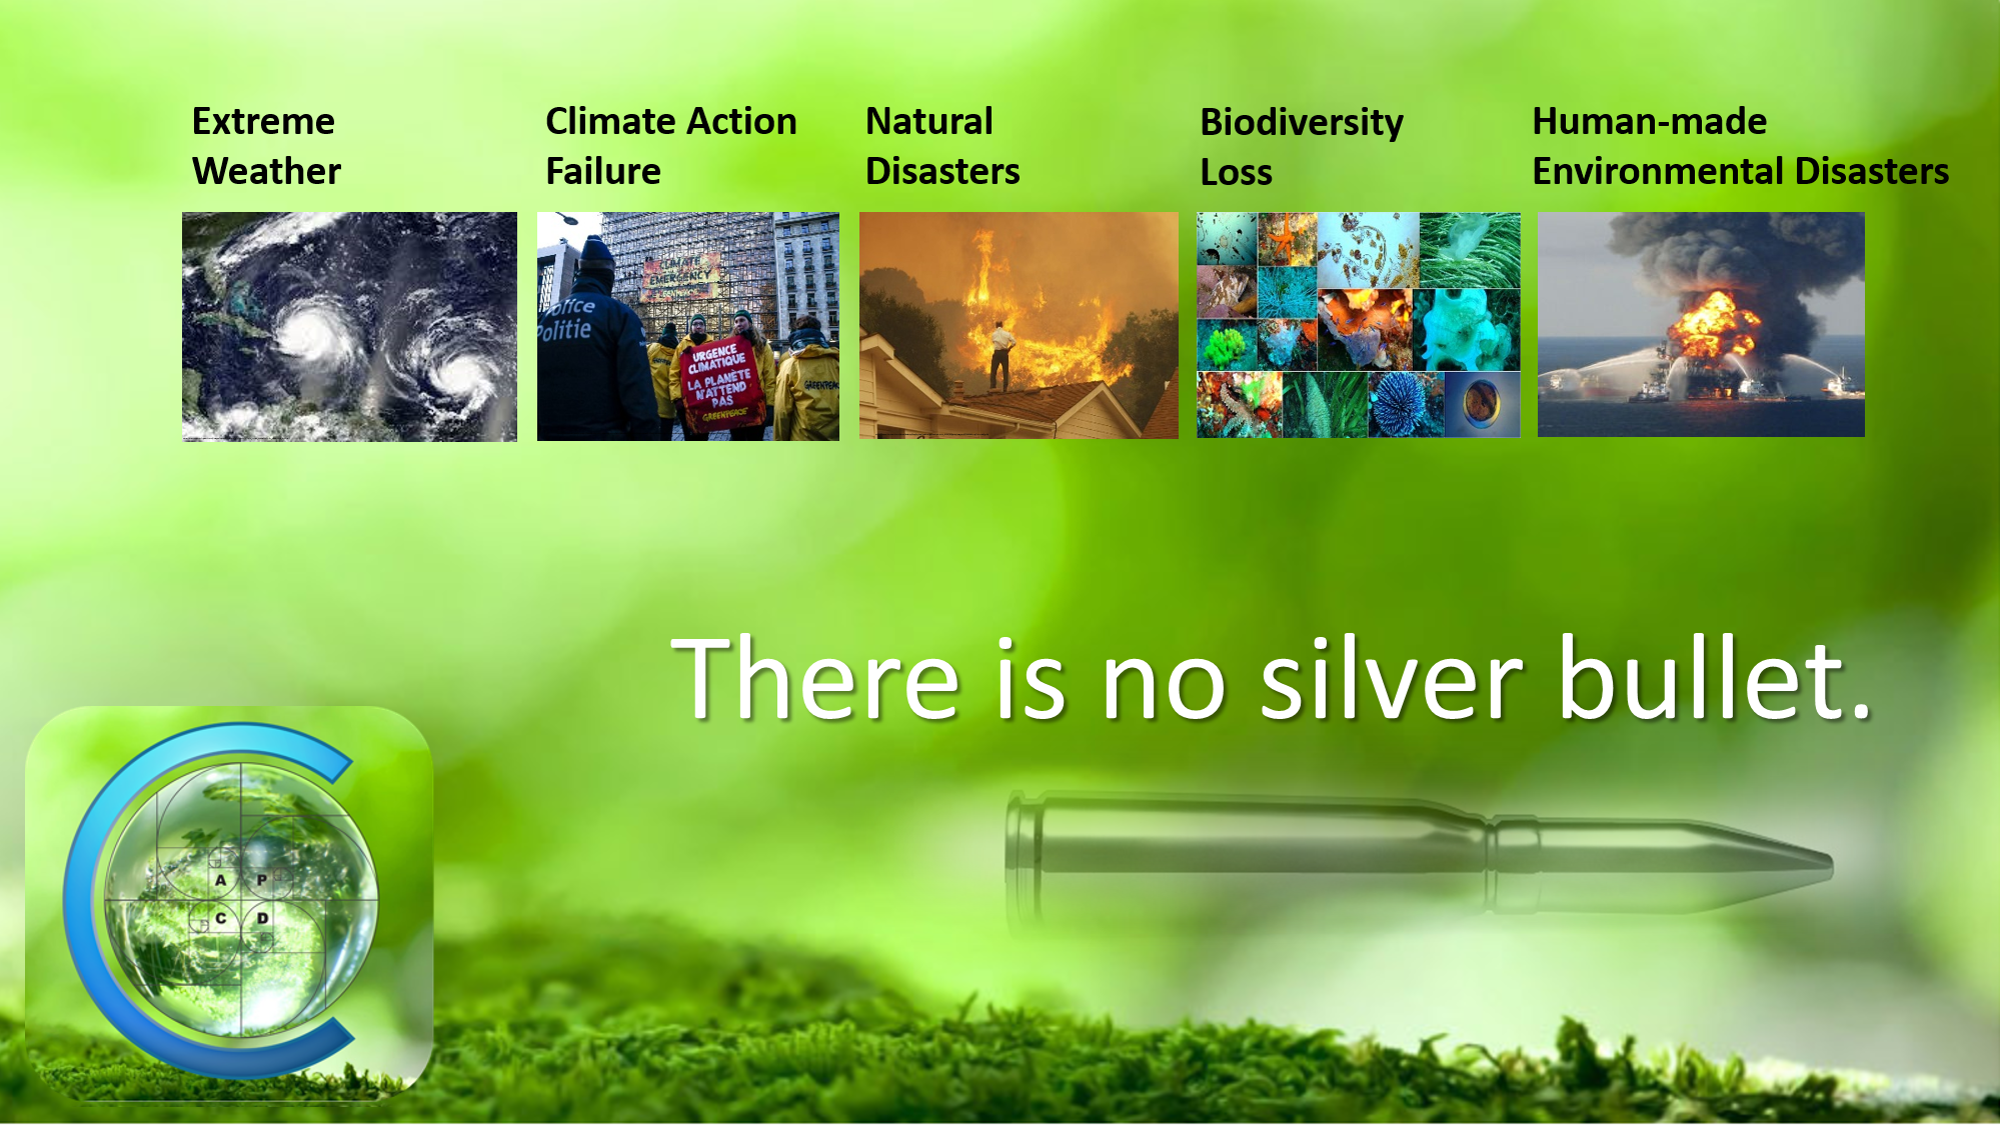 There is no silver bullet.